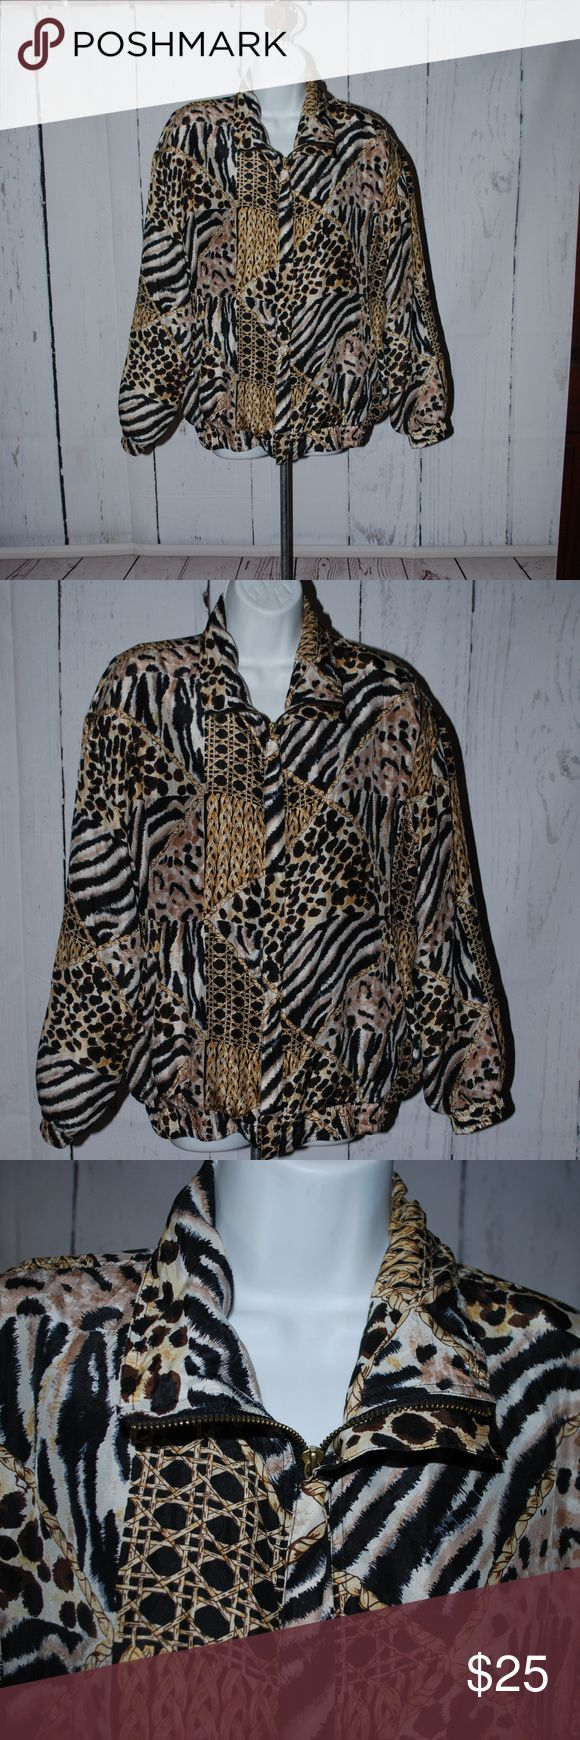 Vintage 90's bomber jacket 100% silk animal print Vintage 90's bomber jacket 100% silk animal print zip up front complete with classic shoulder pads smoke free home excellent clean condition CoACo Jackets & Coats